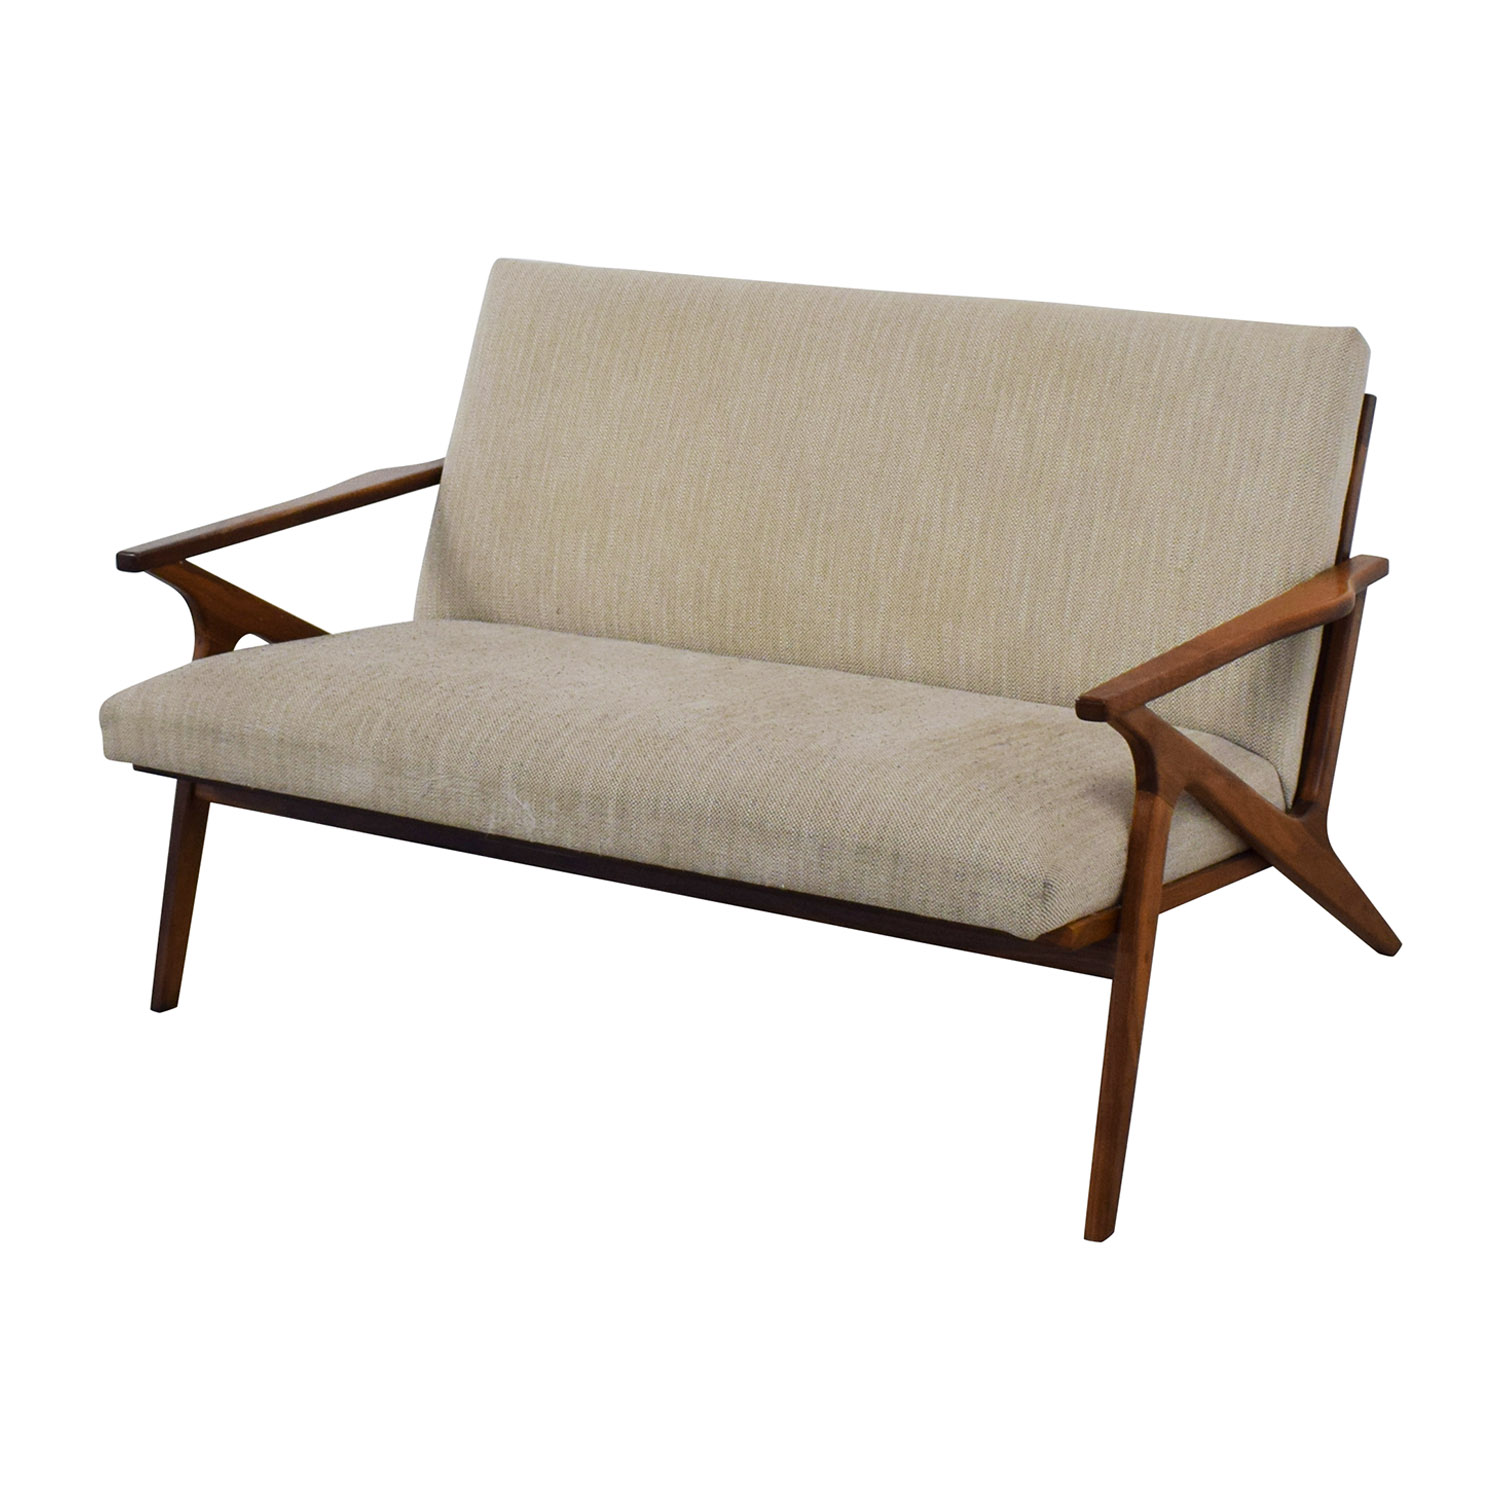 buy Crate & Barrel Cavett Wood Frame Loveseat Crate & Barrel